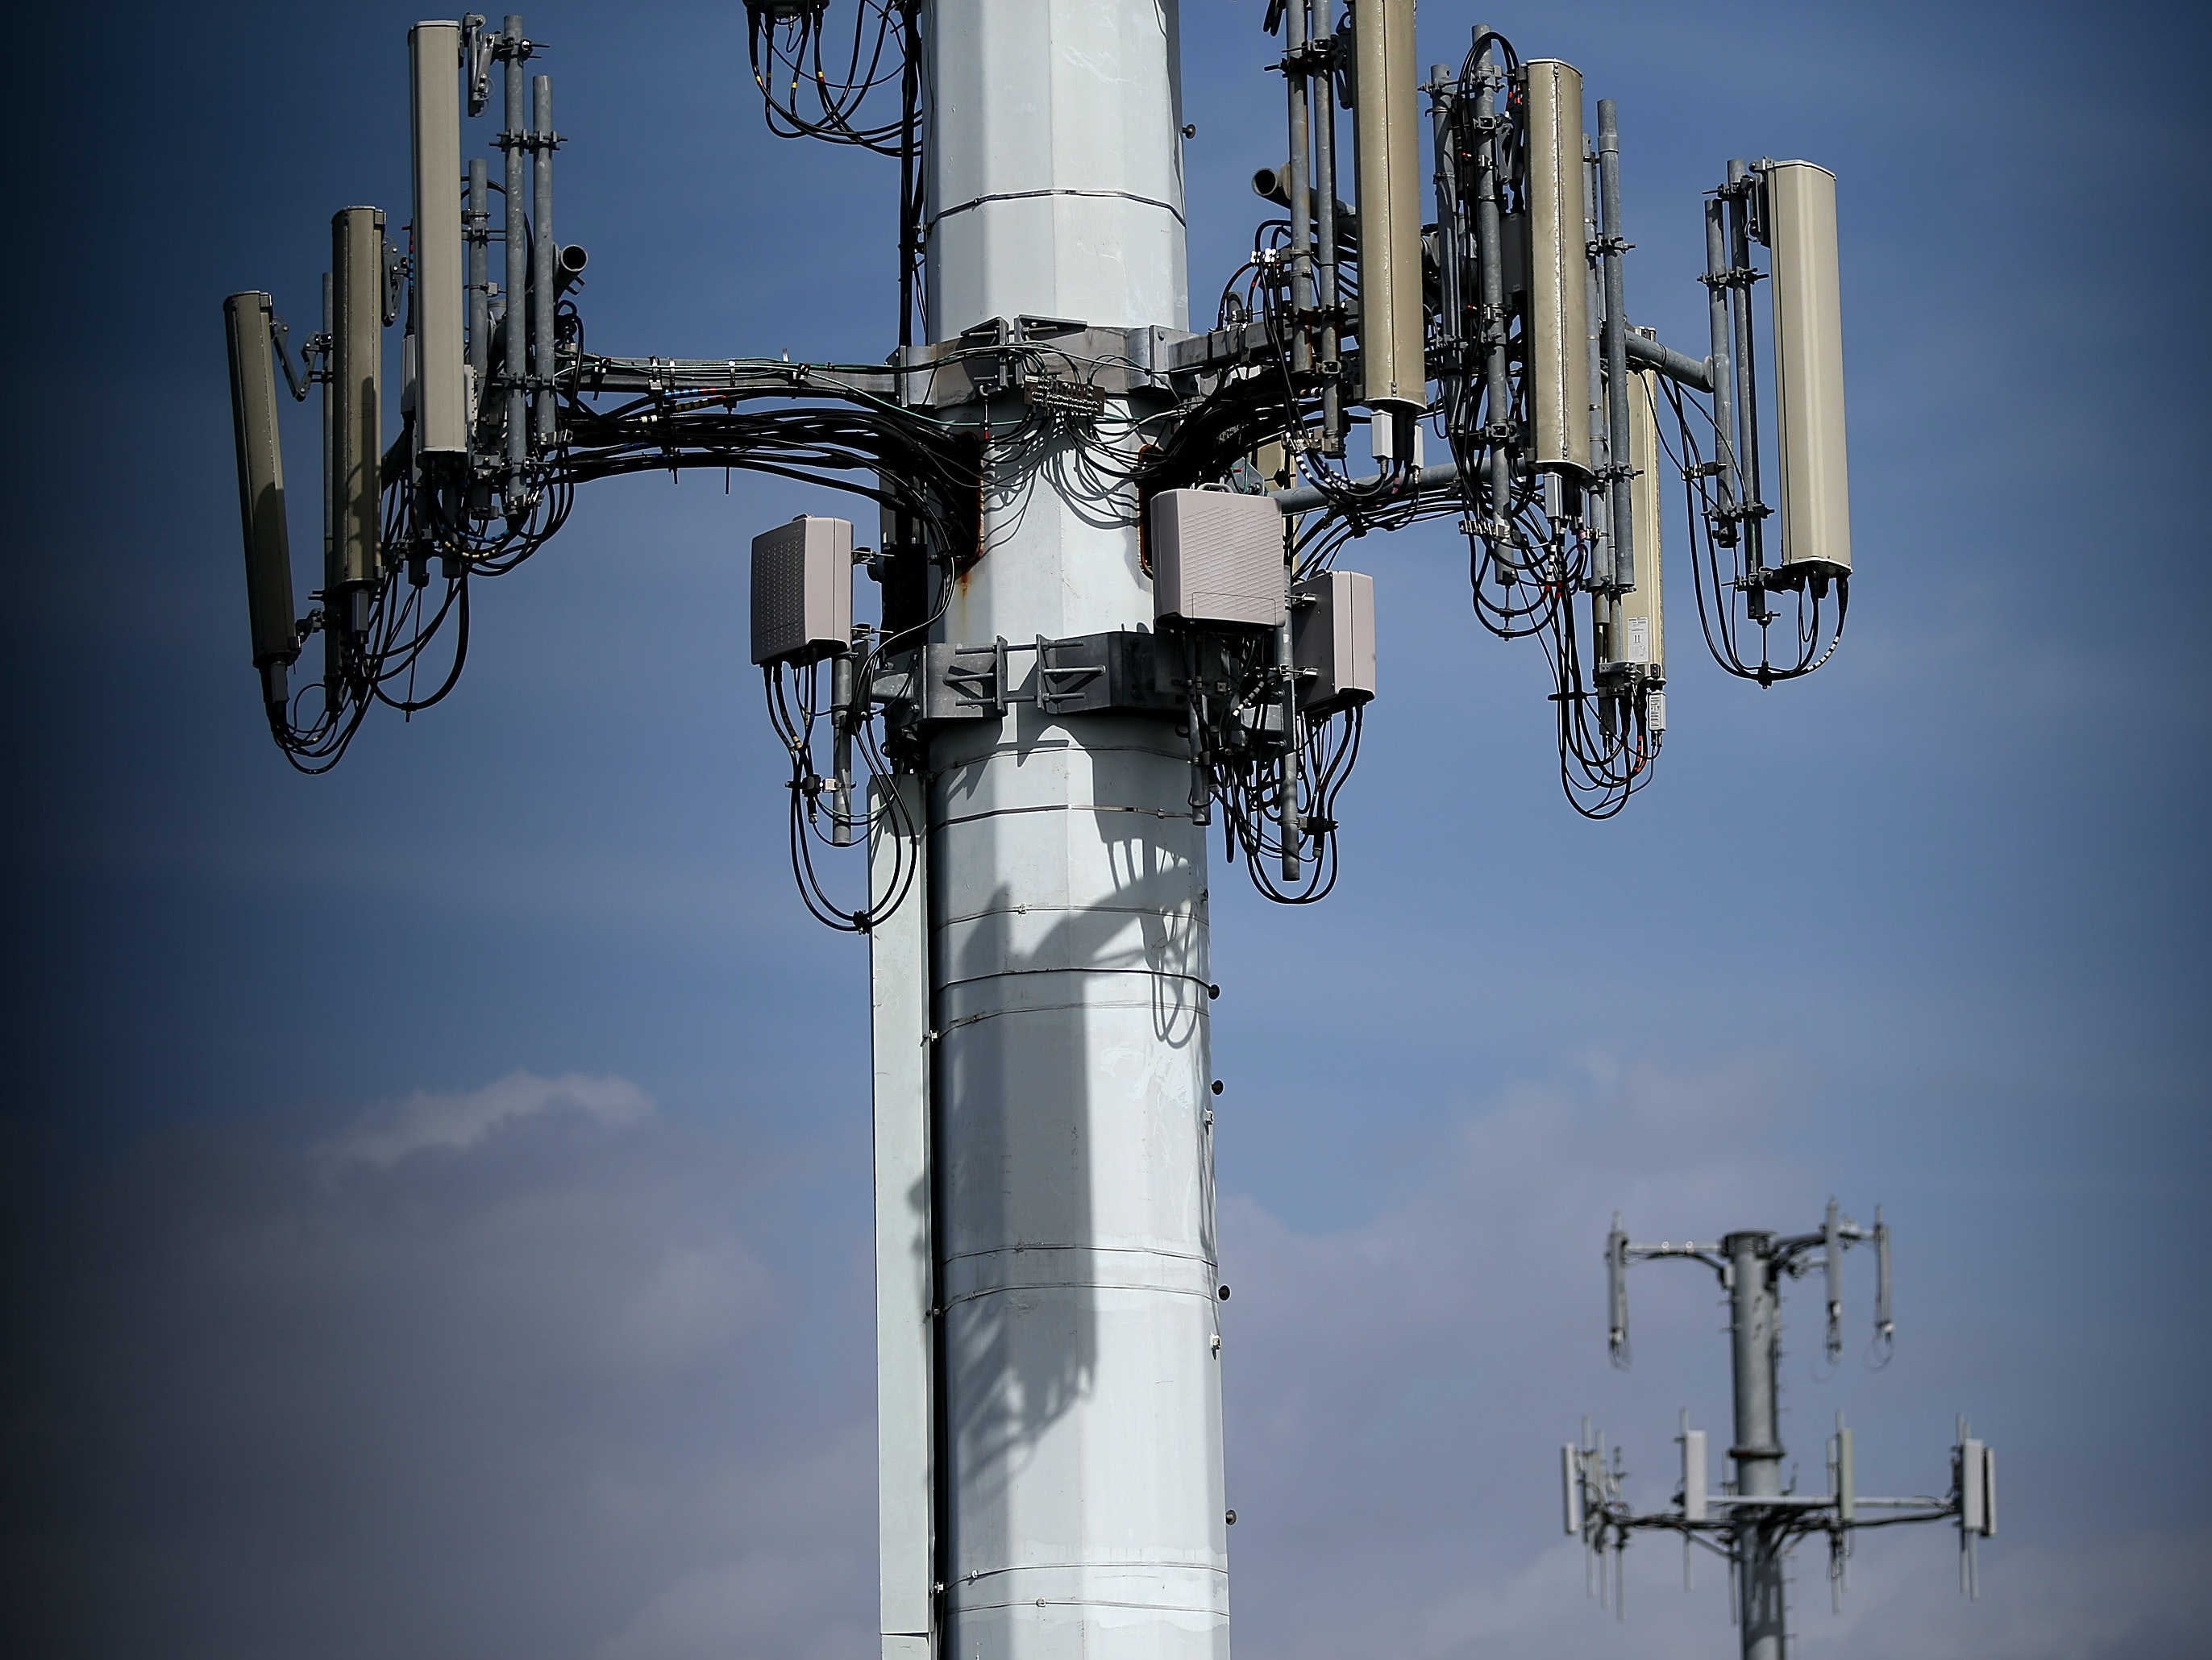 5G Is Coming. But What Is It?